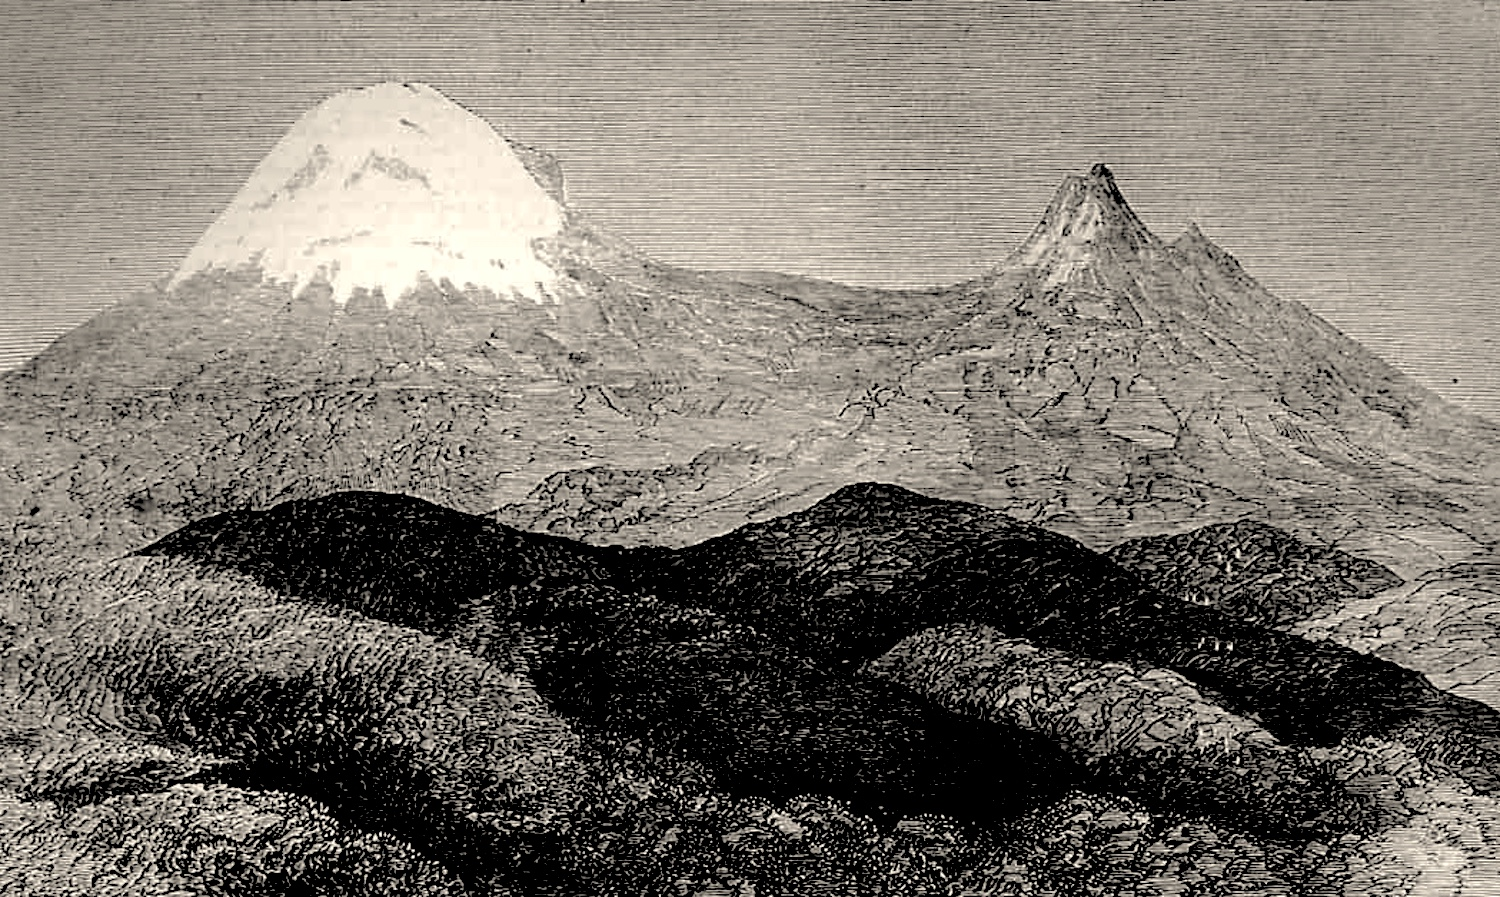 """The summit of Kilima-njaro, a snow-clad mountain in central Africa. From a sketch by the Rev. Charles New, of the Livingstone Relief Expedition."" Published in  The Illustrated London News , June 8, 1872, more than a decade in advance of the first successful ascent in 1889. Image taken from    here   ."